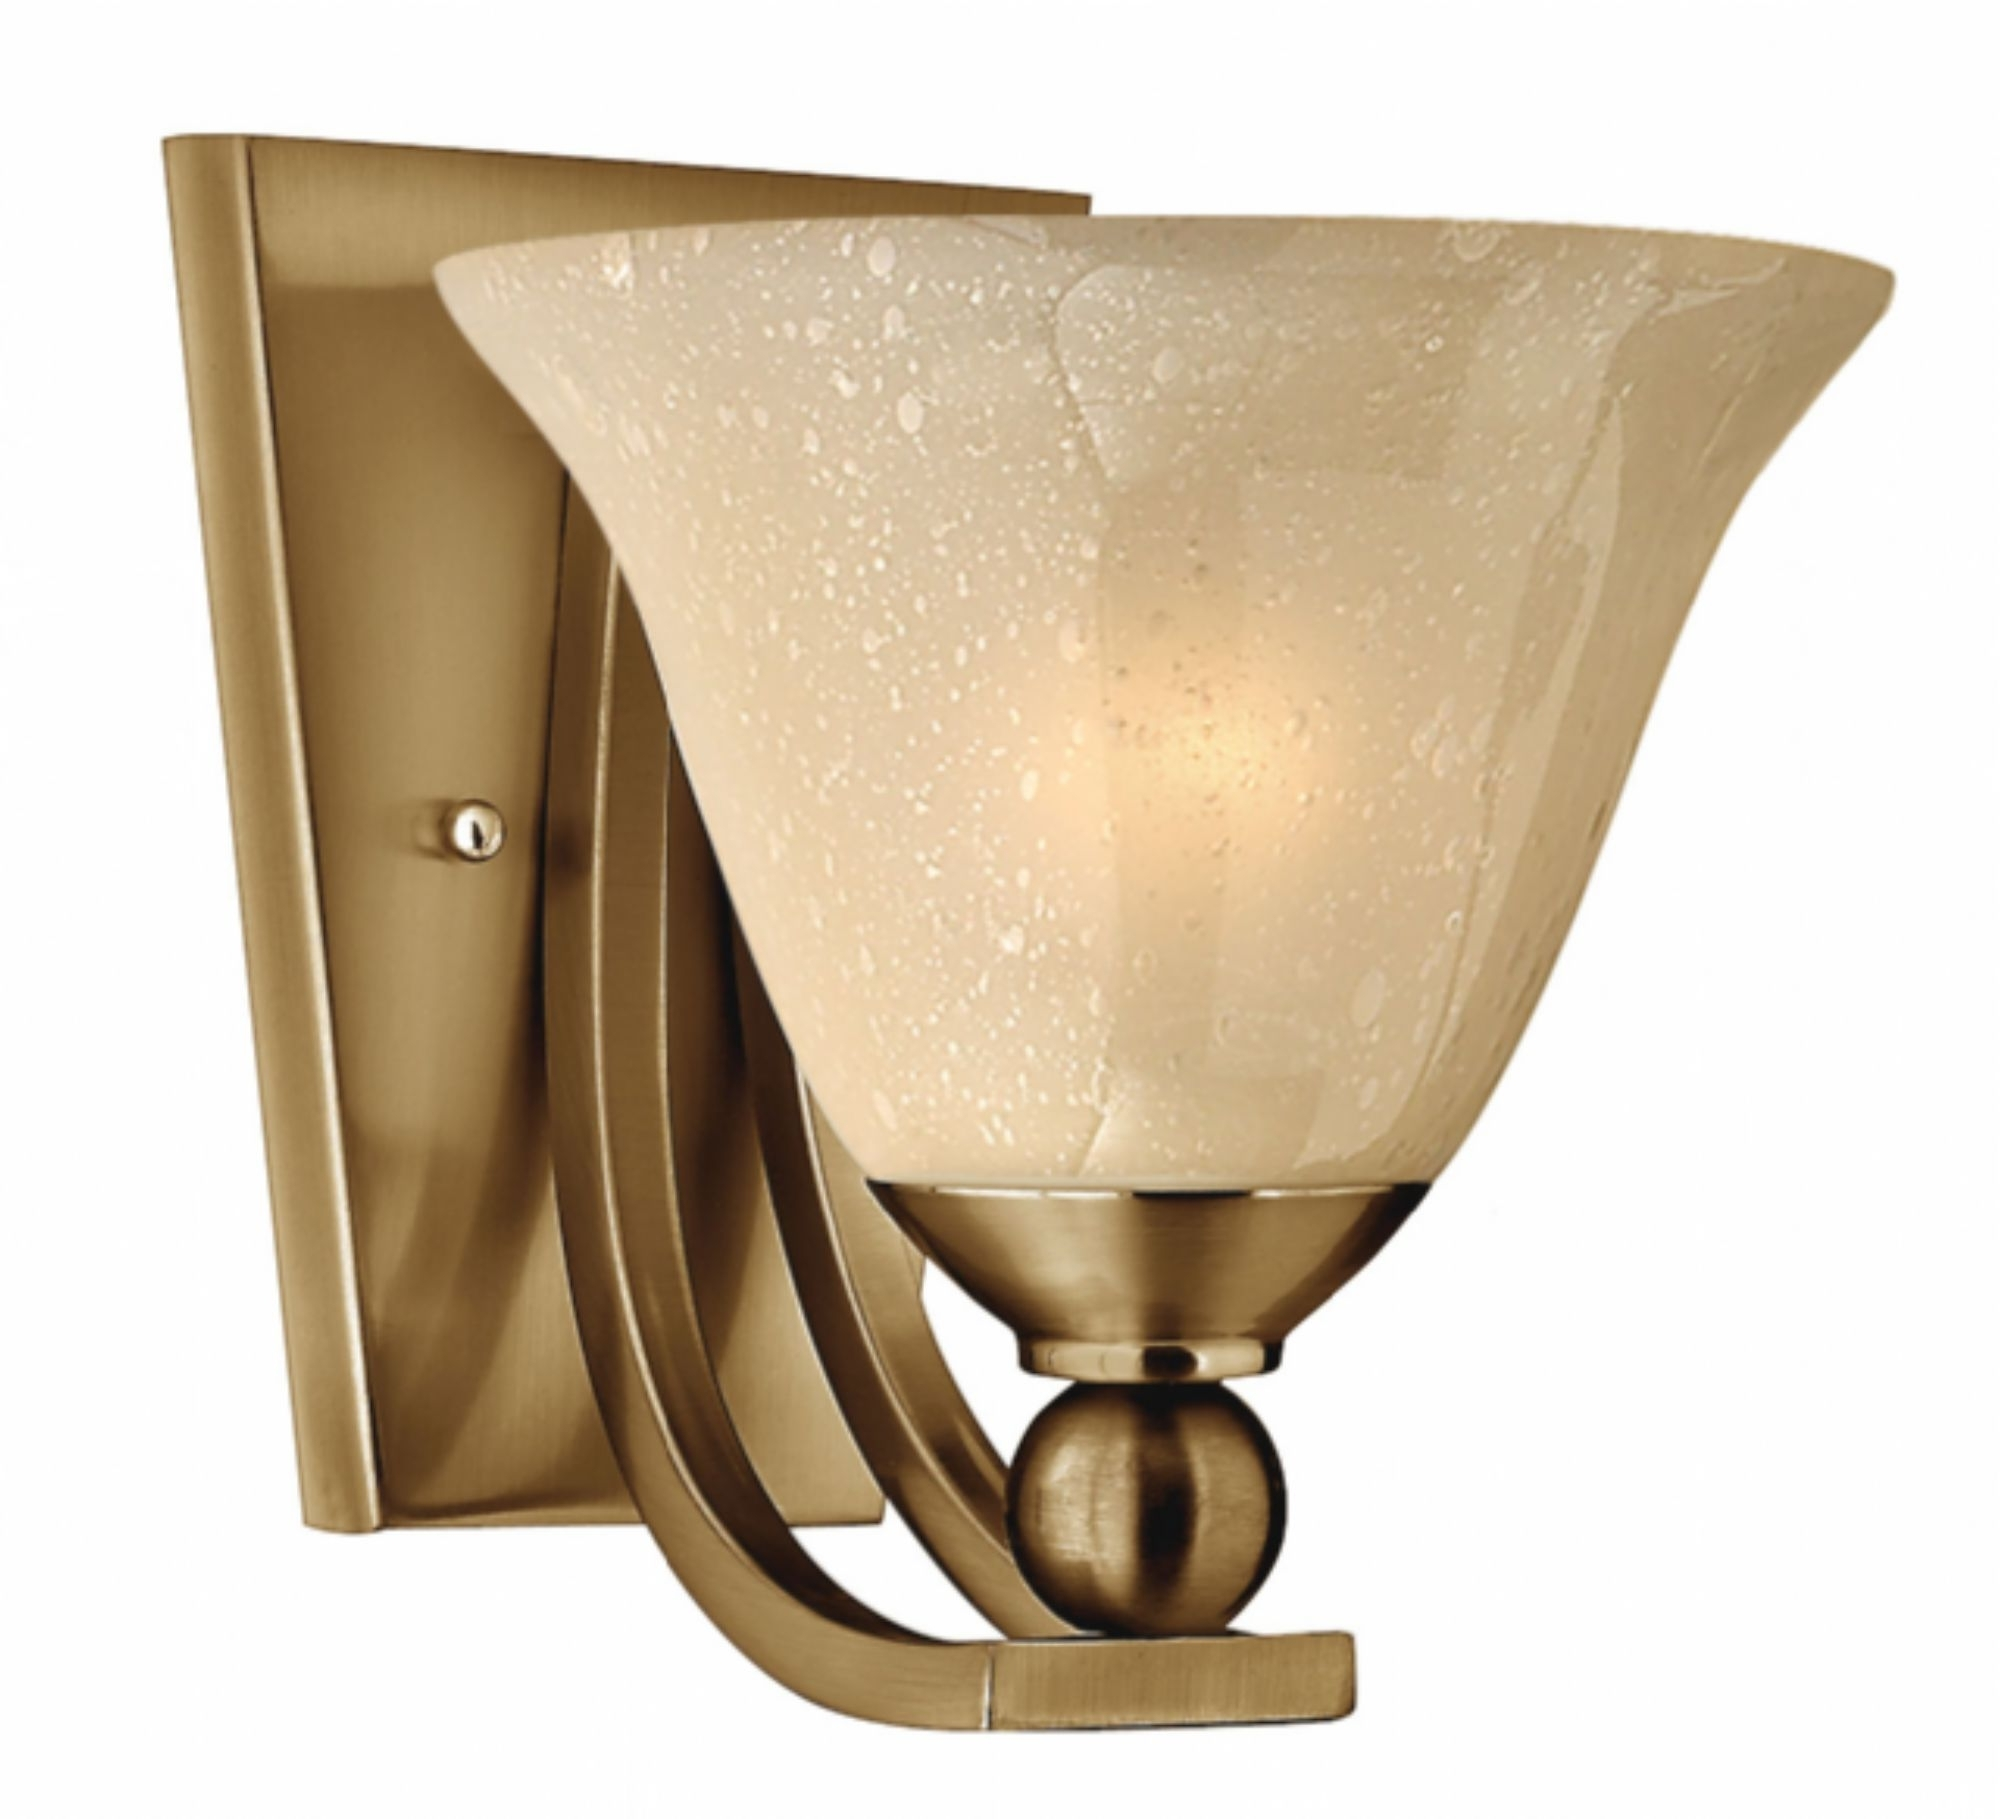 Favorite Brushed Bronze Bolla > Interior Wall Mount Intended For Double Wall Mount Hinkley Lighting (View 10 of 20)